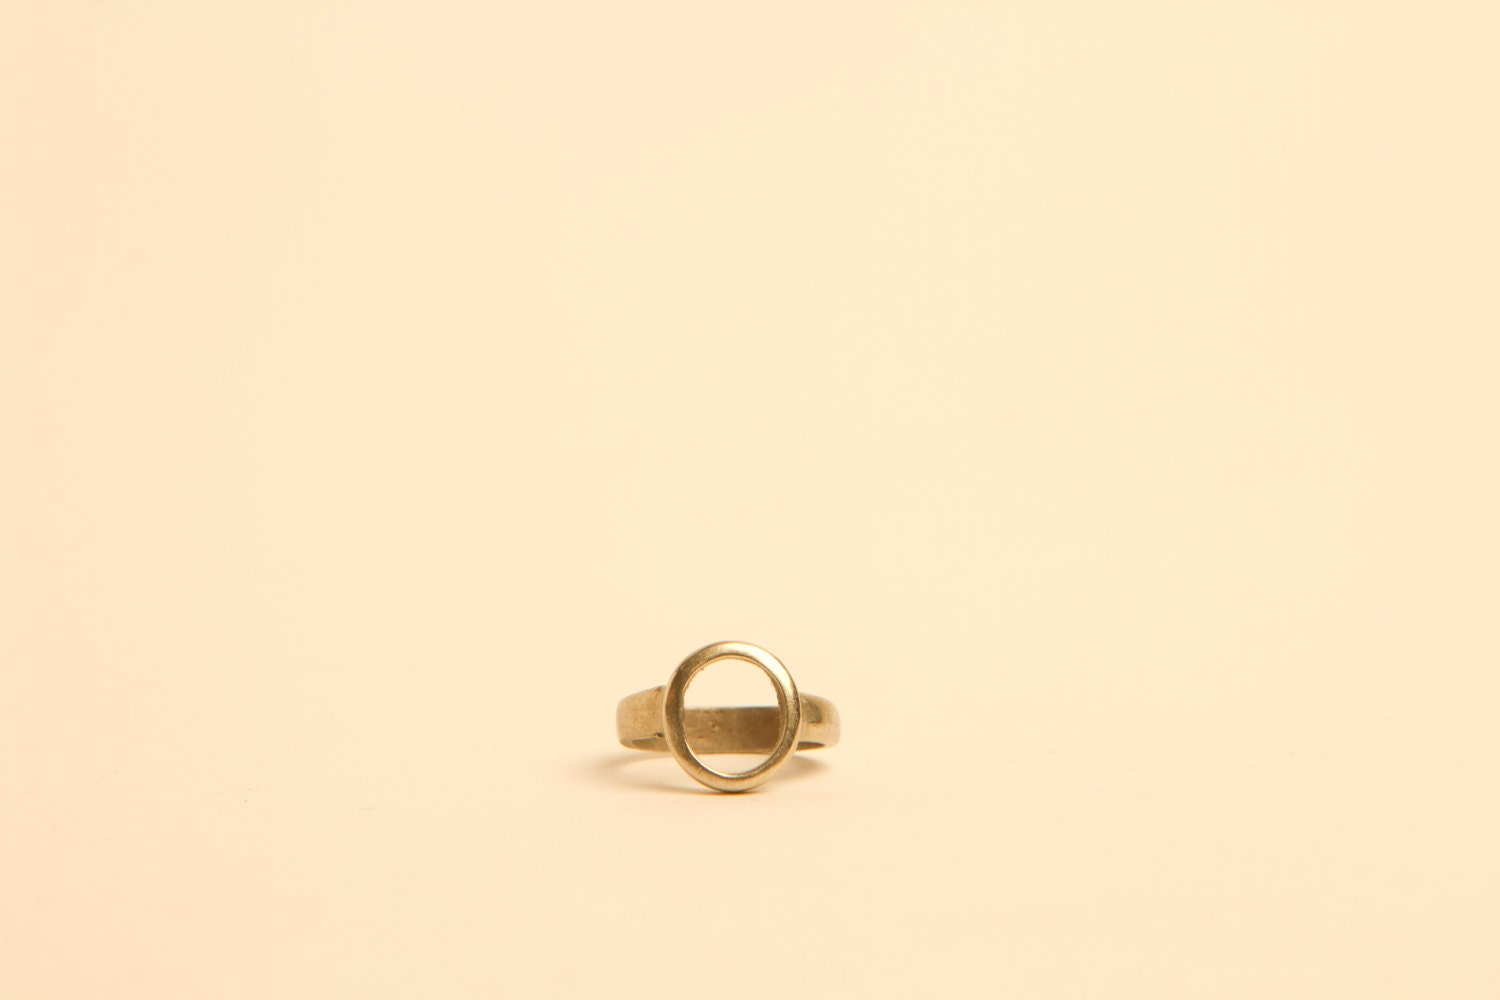 Above the knuckle ring, Upper Finger Ring, Middle Finger Ring, Knuckle Ring, Half Way Finger Ring, Circle Ring Gold Silver Color